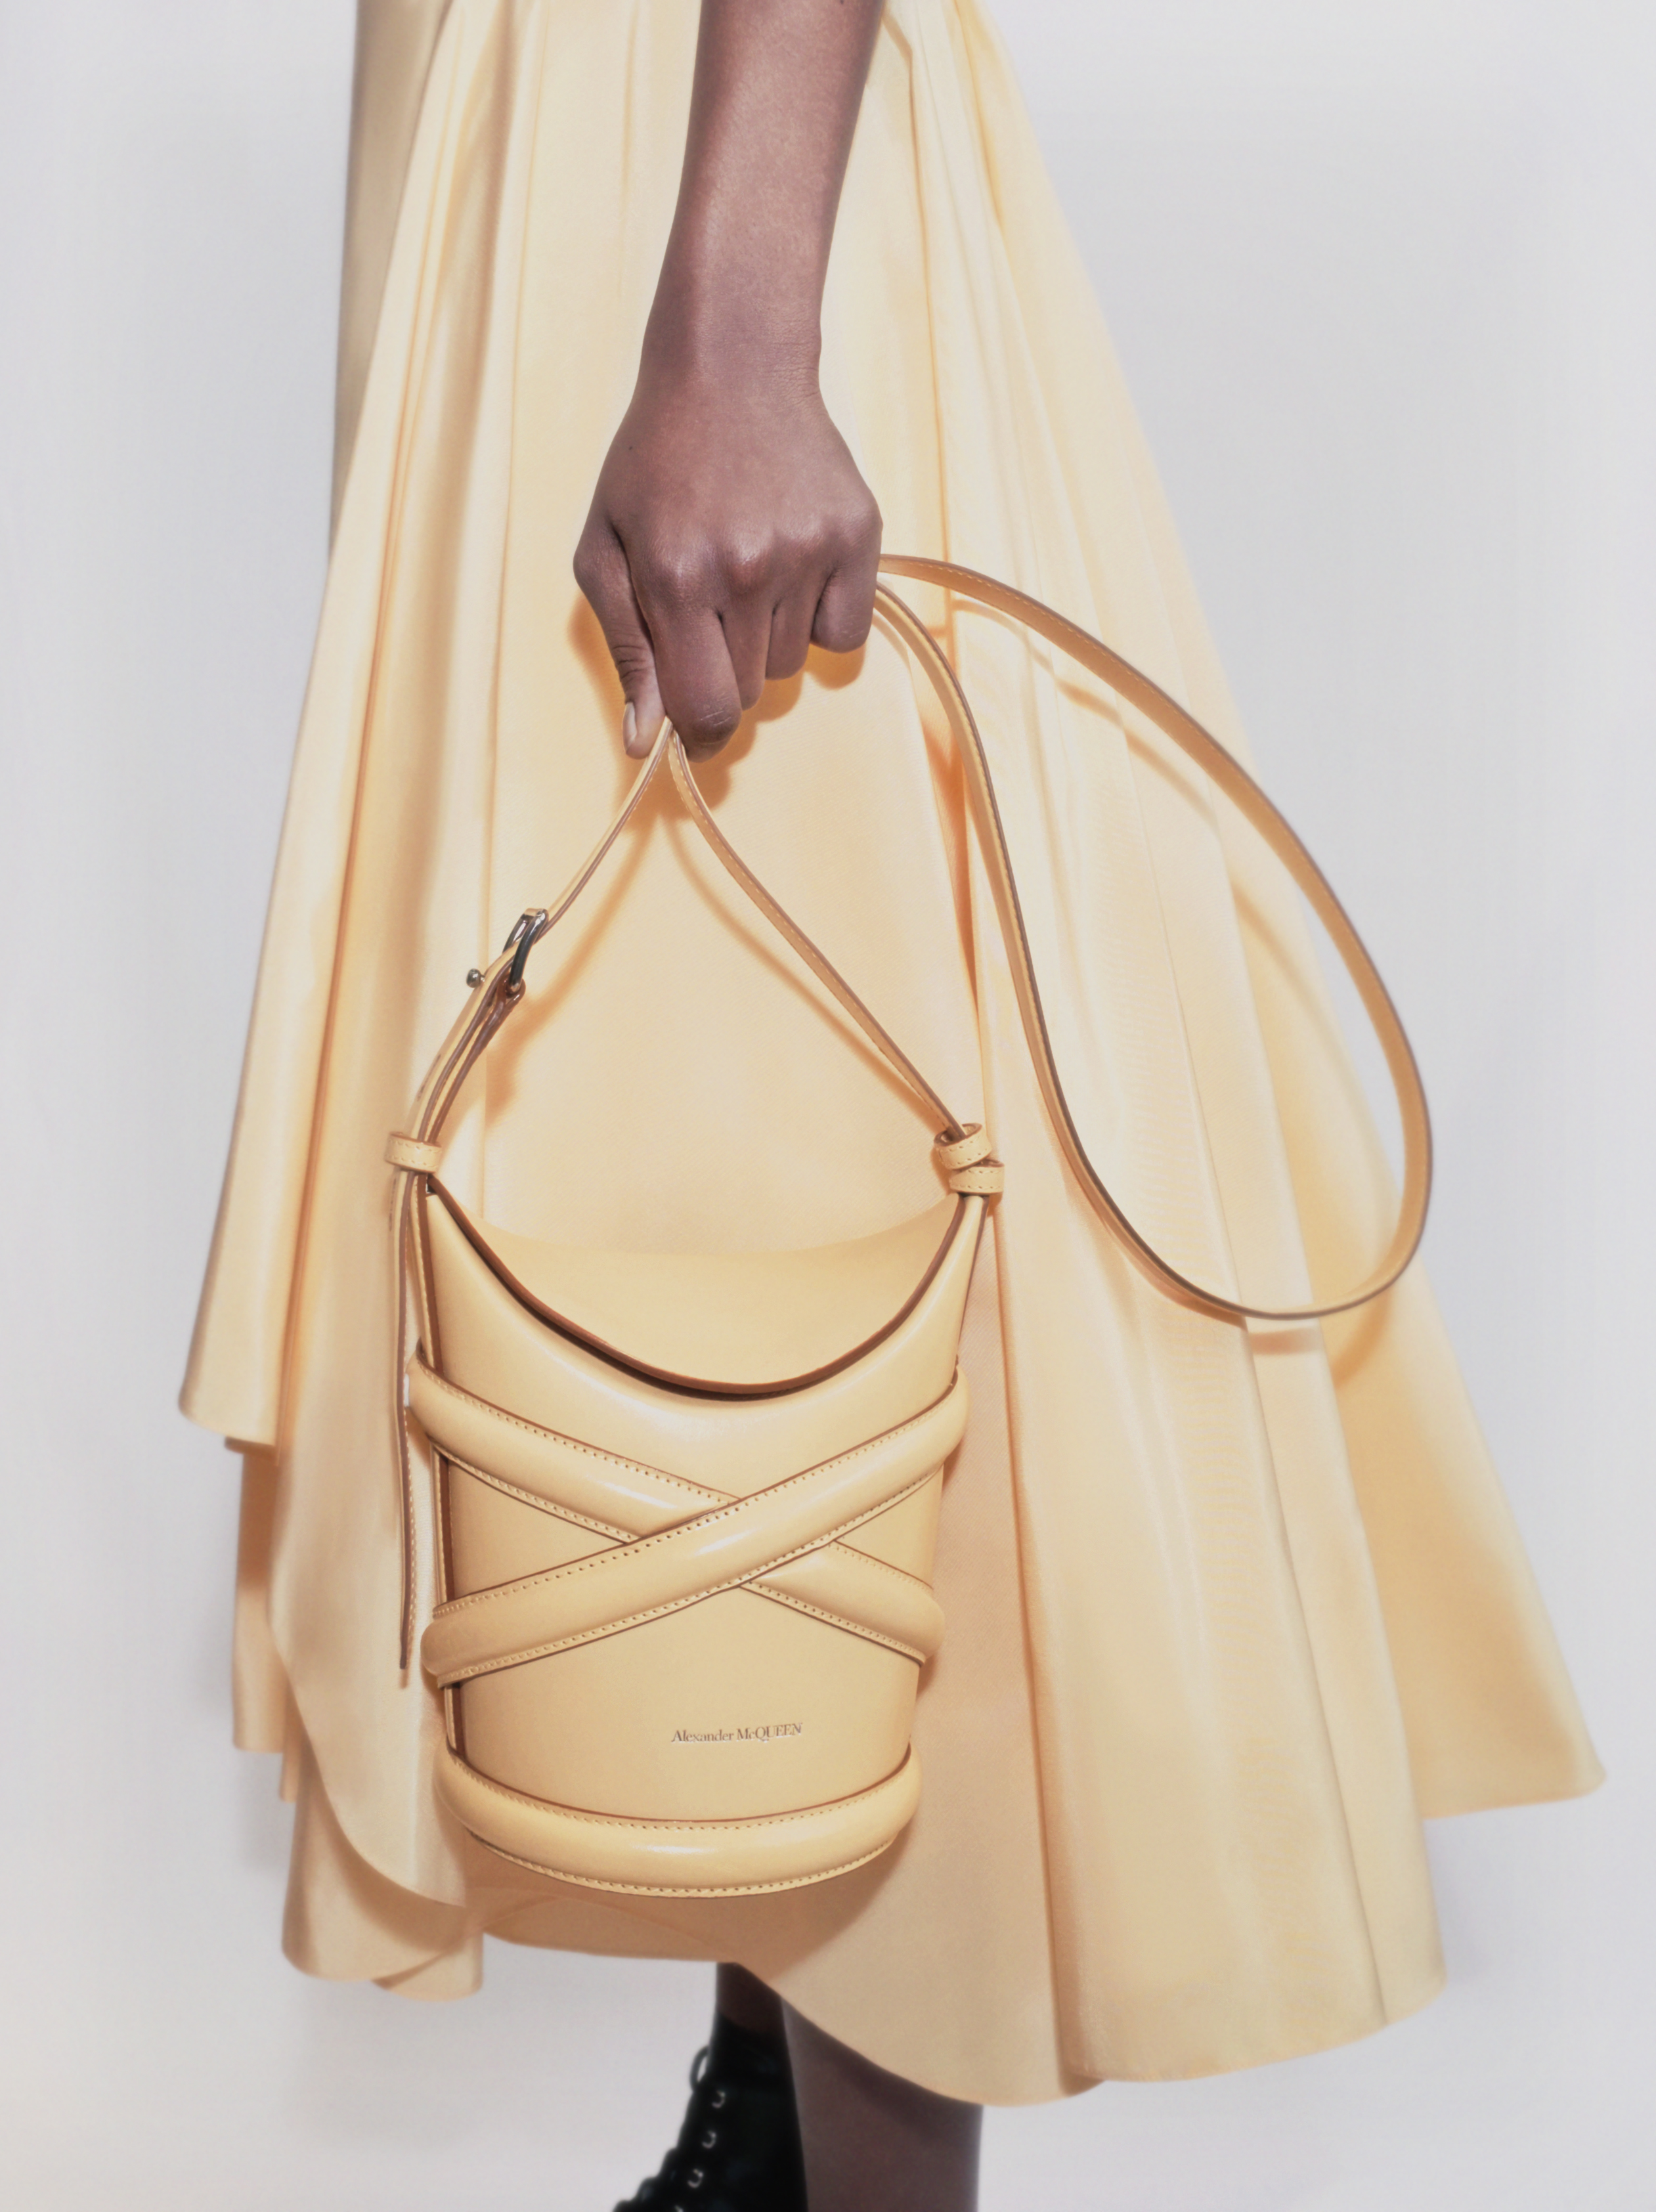 Alexander McQueen Just Created the Perfect Bag for Summer 2021 - Curve Bag